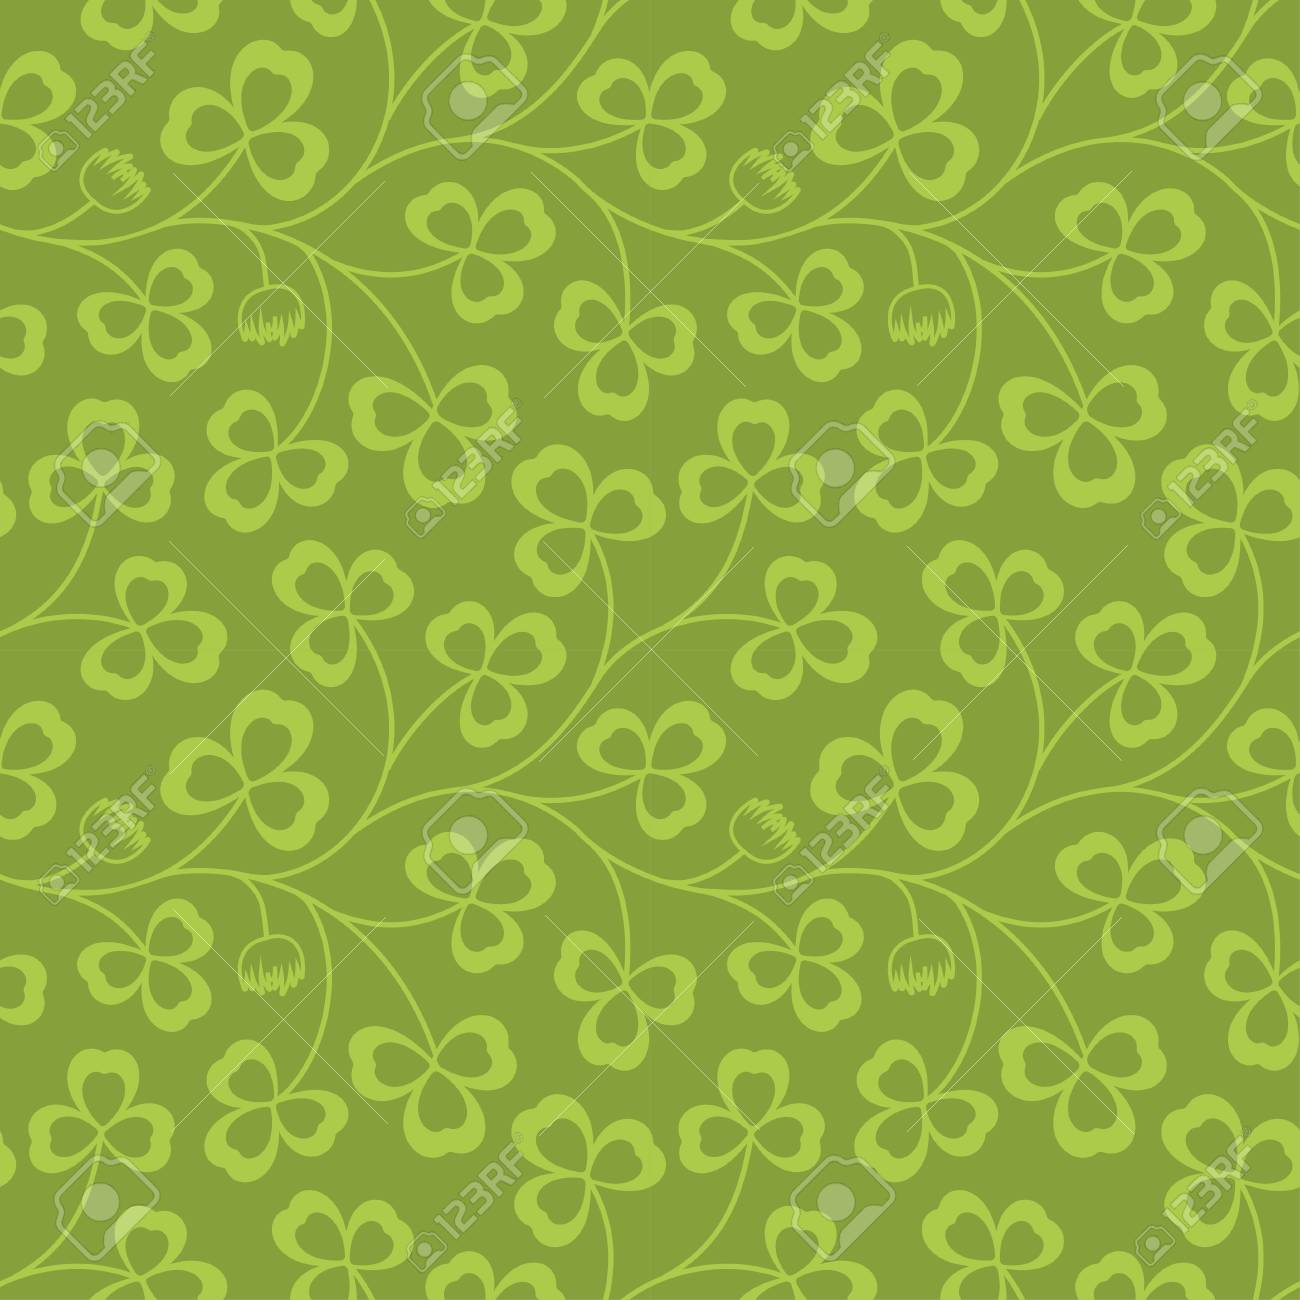 Clover leaves seamless pattern st patricks day green background clover leaves seamless pattern st patricks day green background shamrock wallpaper stock voltagebd Image collections